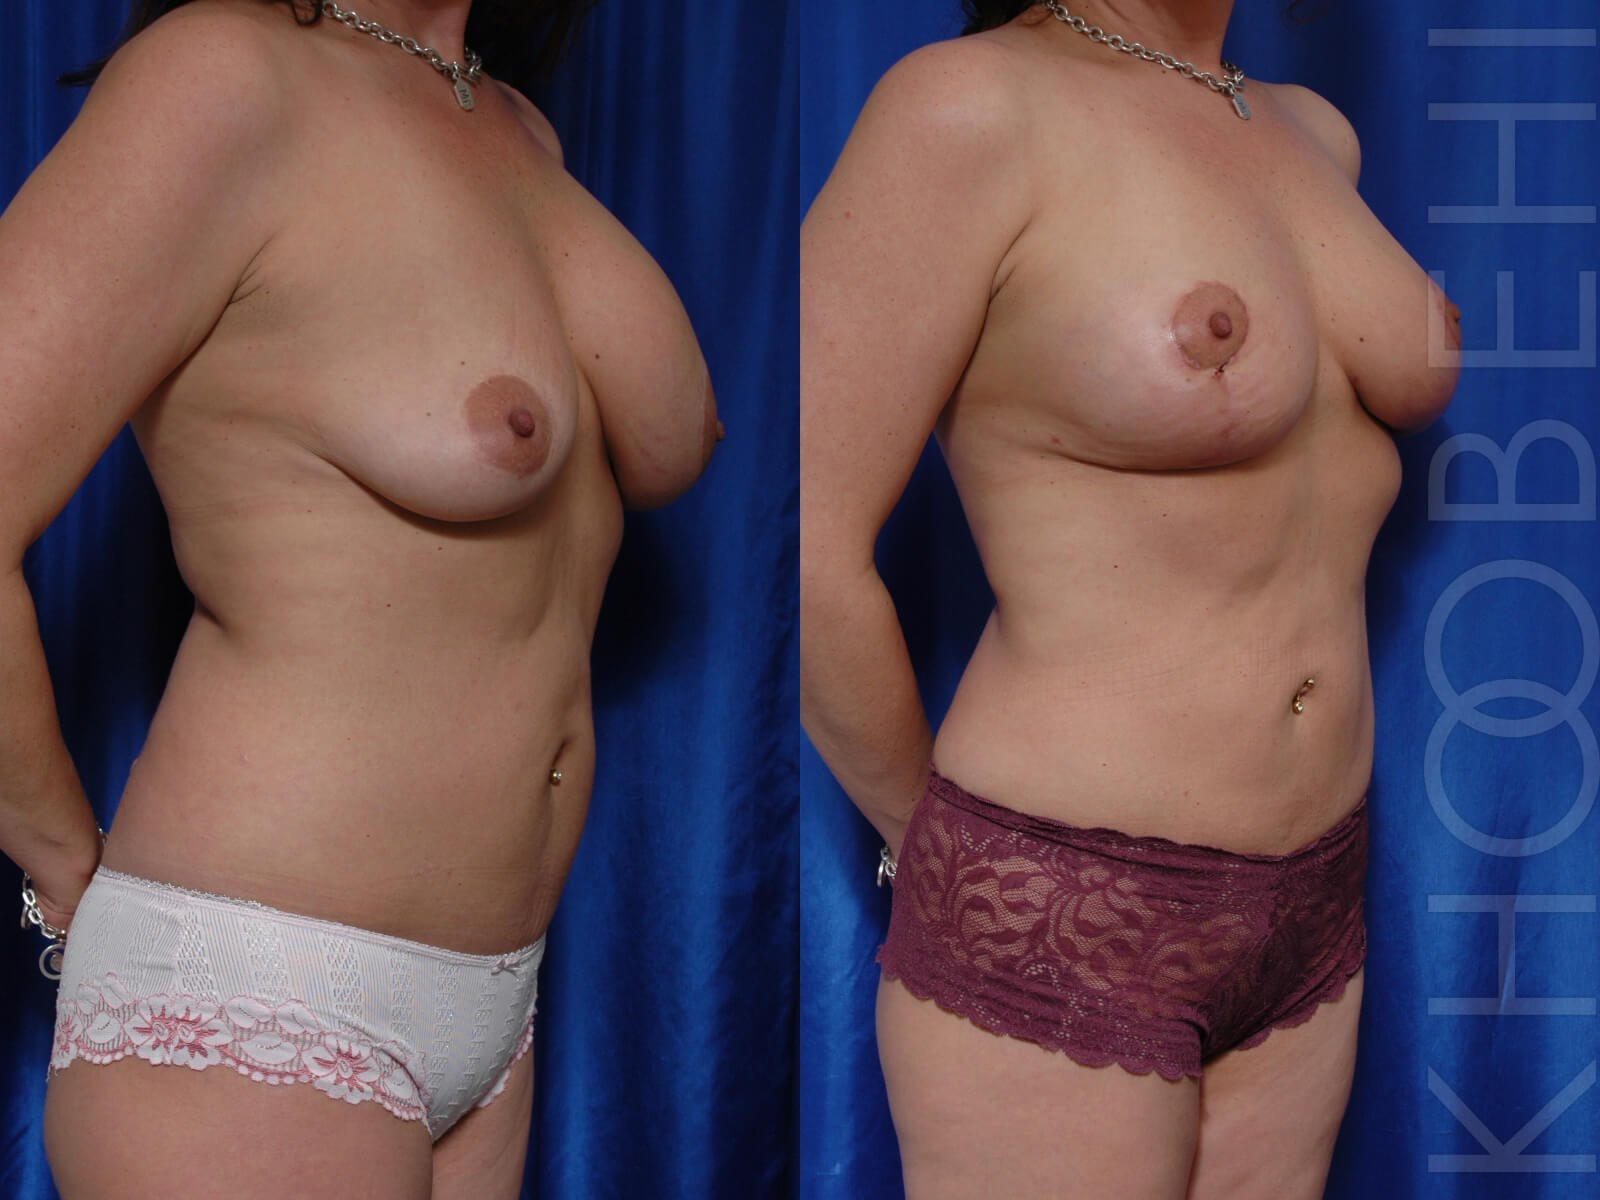 Implant Removal, Fat, Lift Before\After